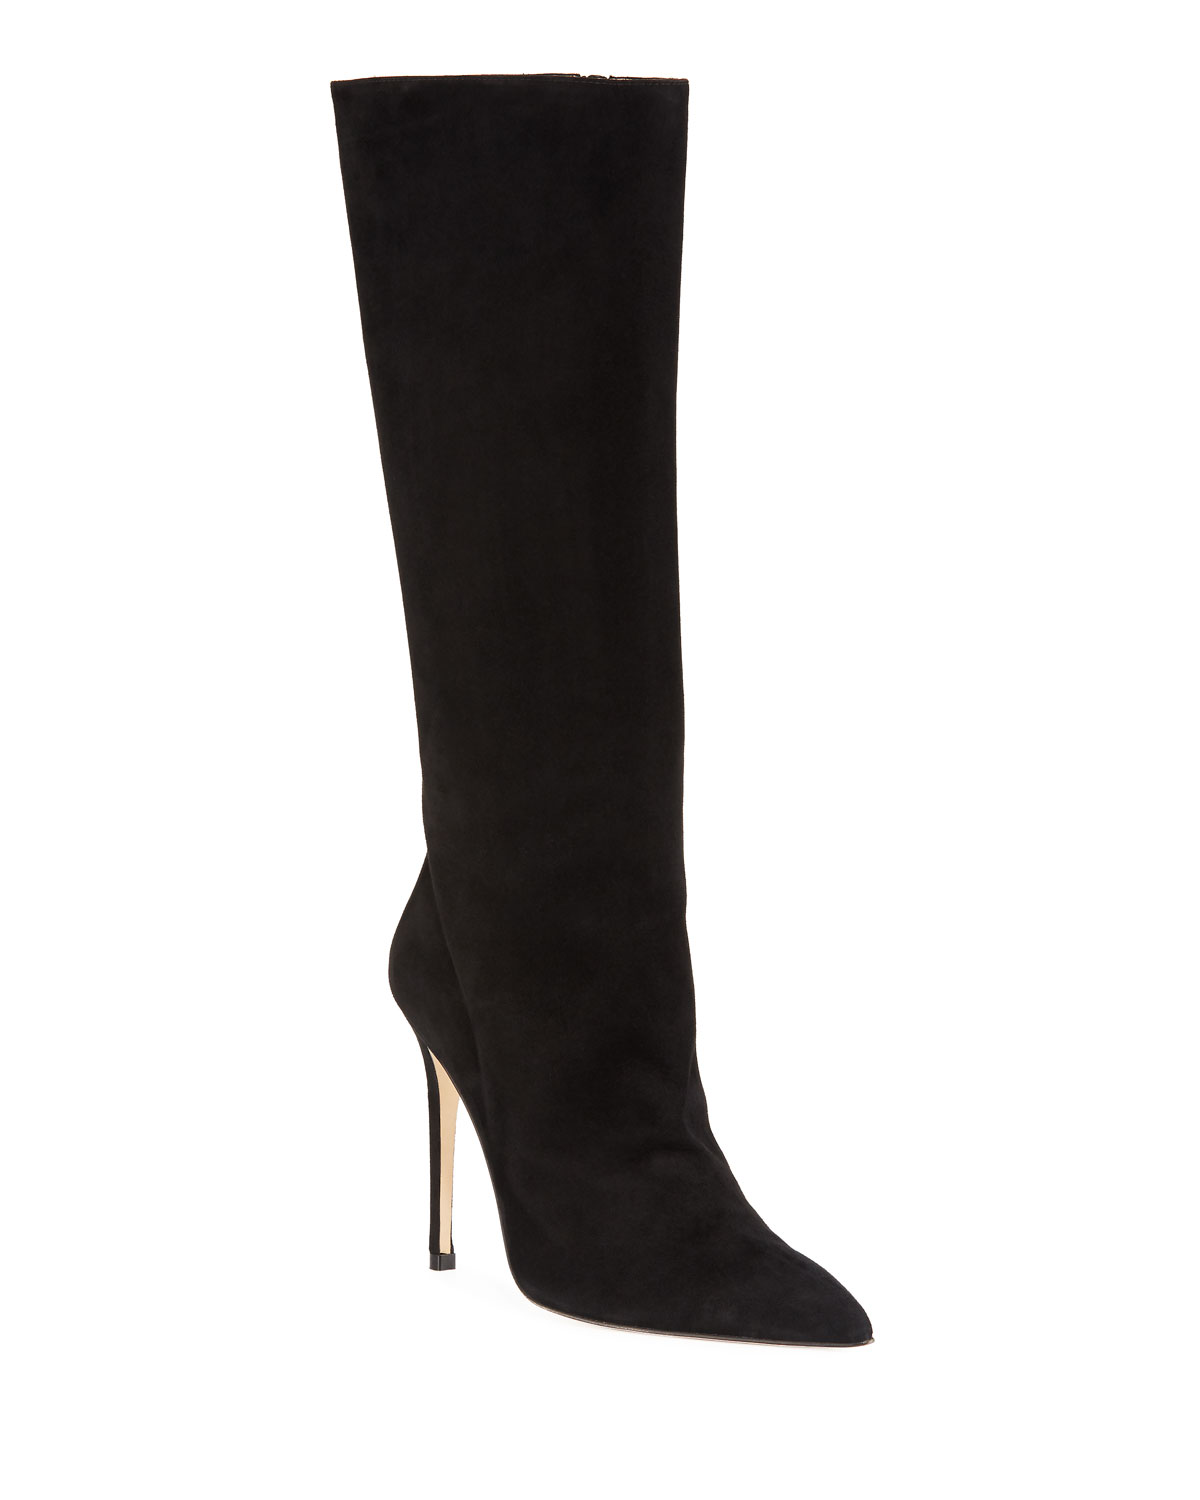 be2fda4b394c4 Alexandre Birman Porto Suede Pointed-Toe Boot, Black | Neiman Marcus